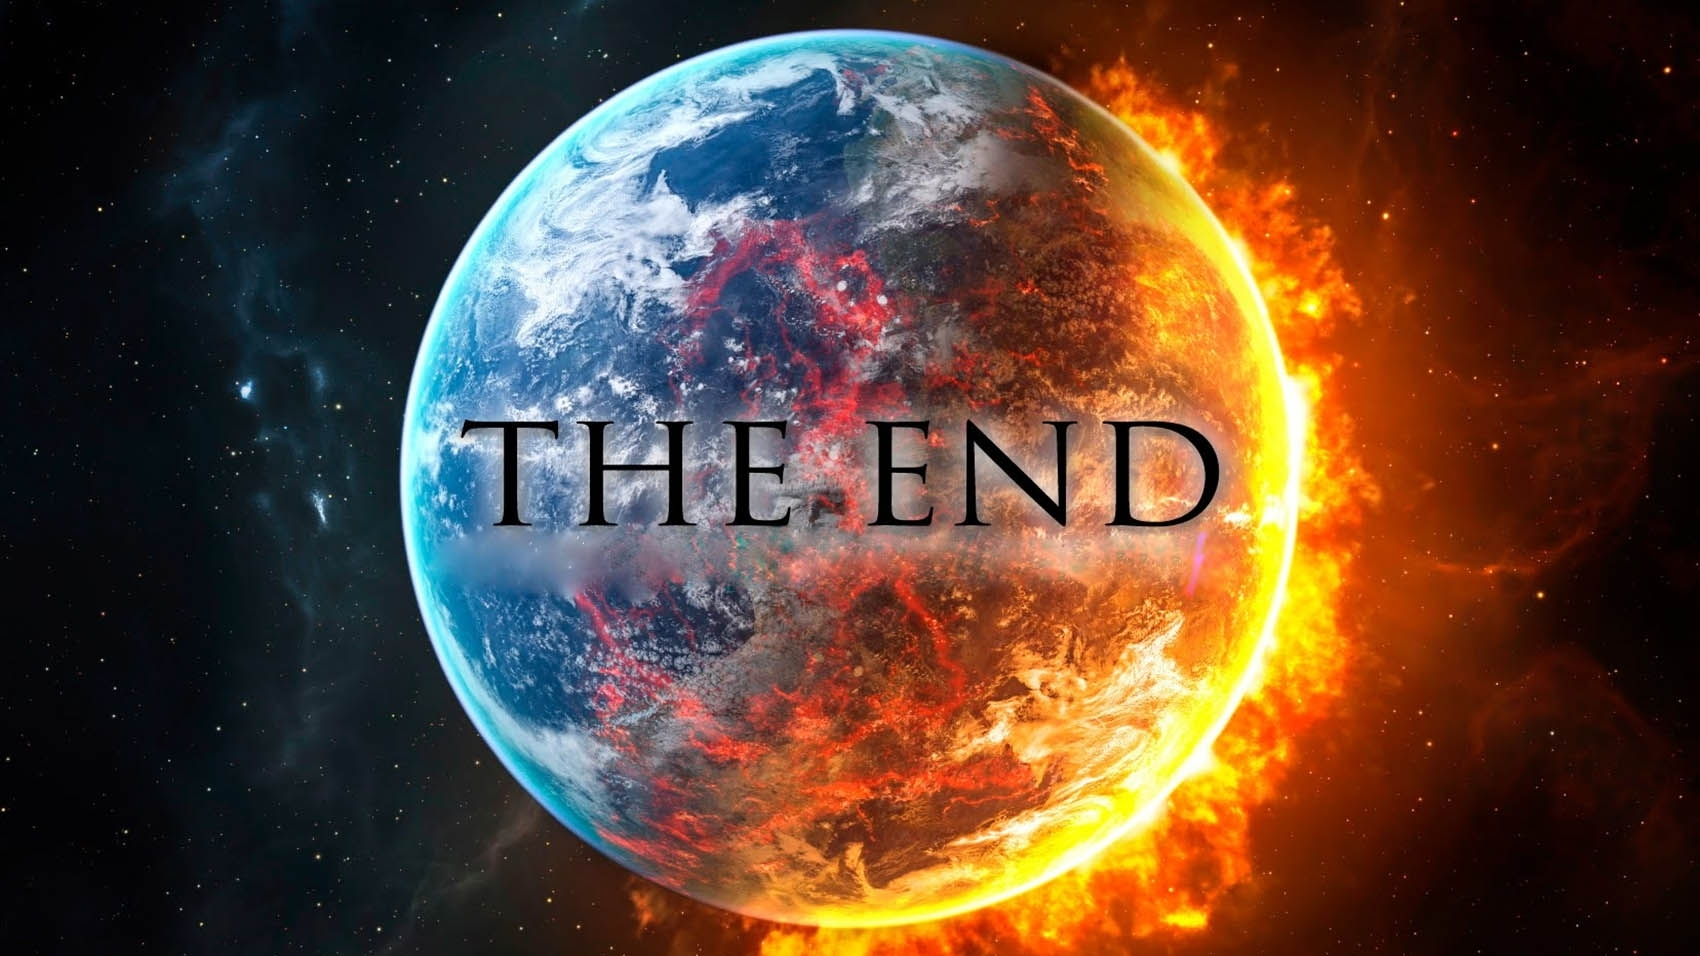 It's The End Of The World And I Feel Fine | Riot Fest regarding The End Of The World